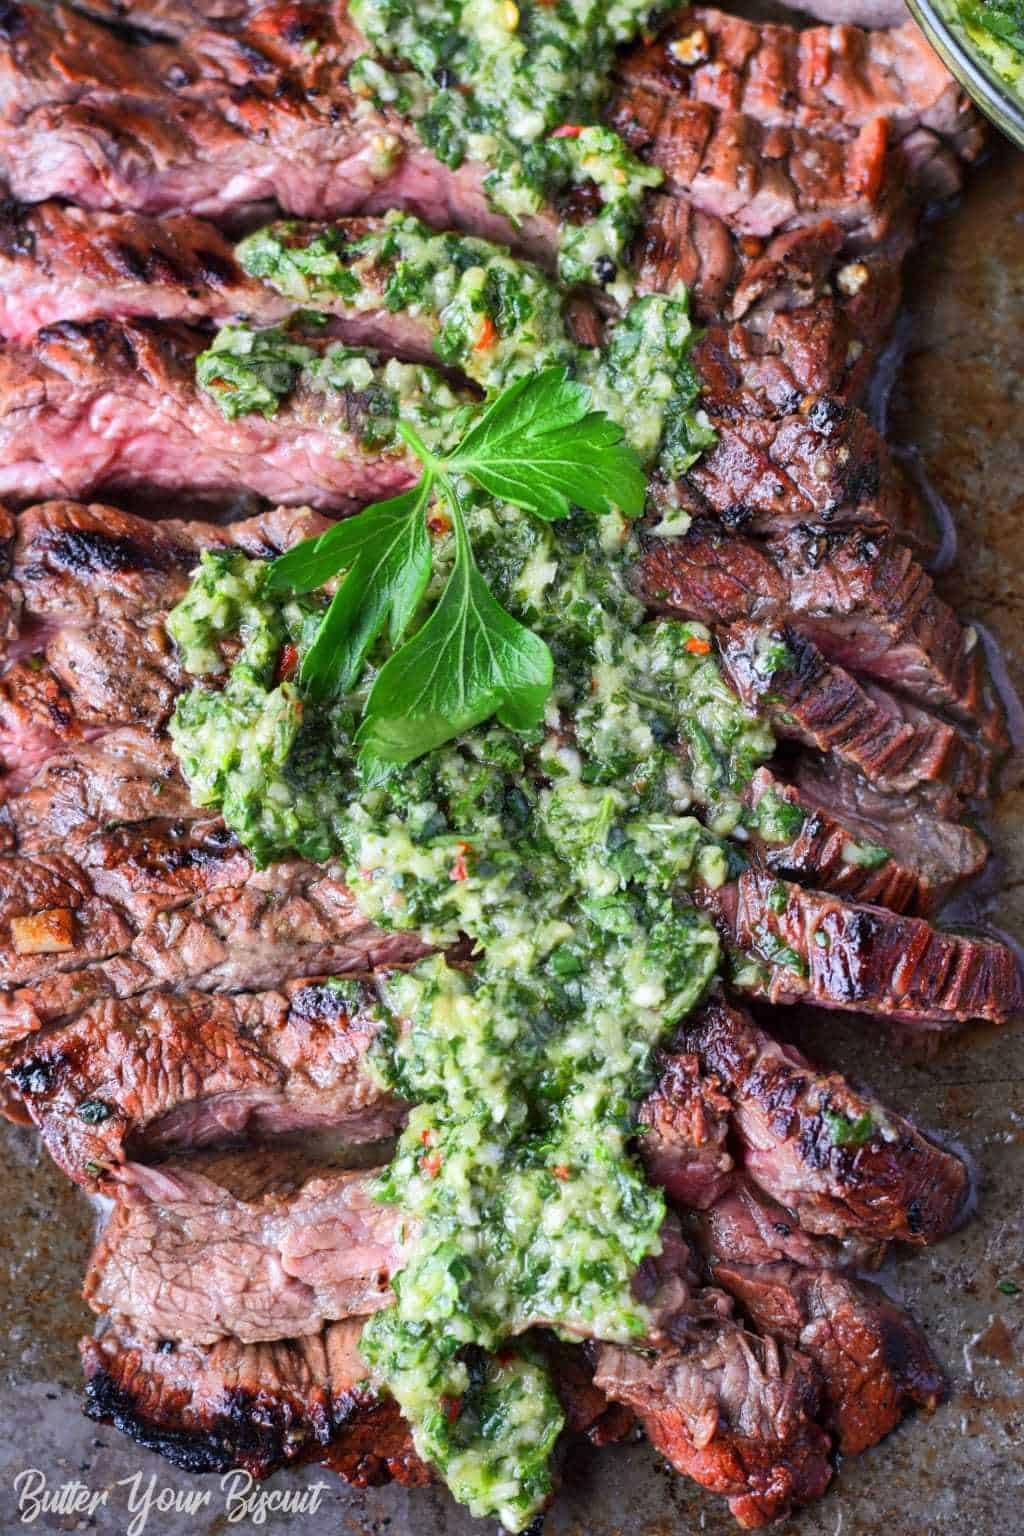 Grilled skirt steak and chimichurri sliced on a baking sheet